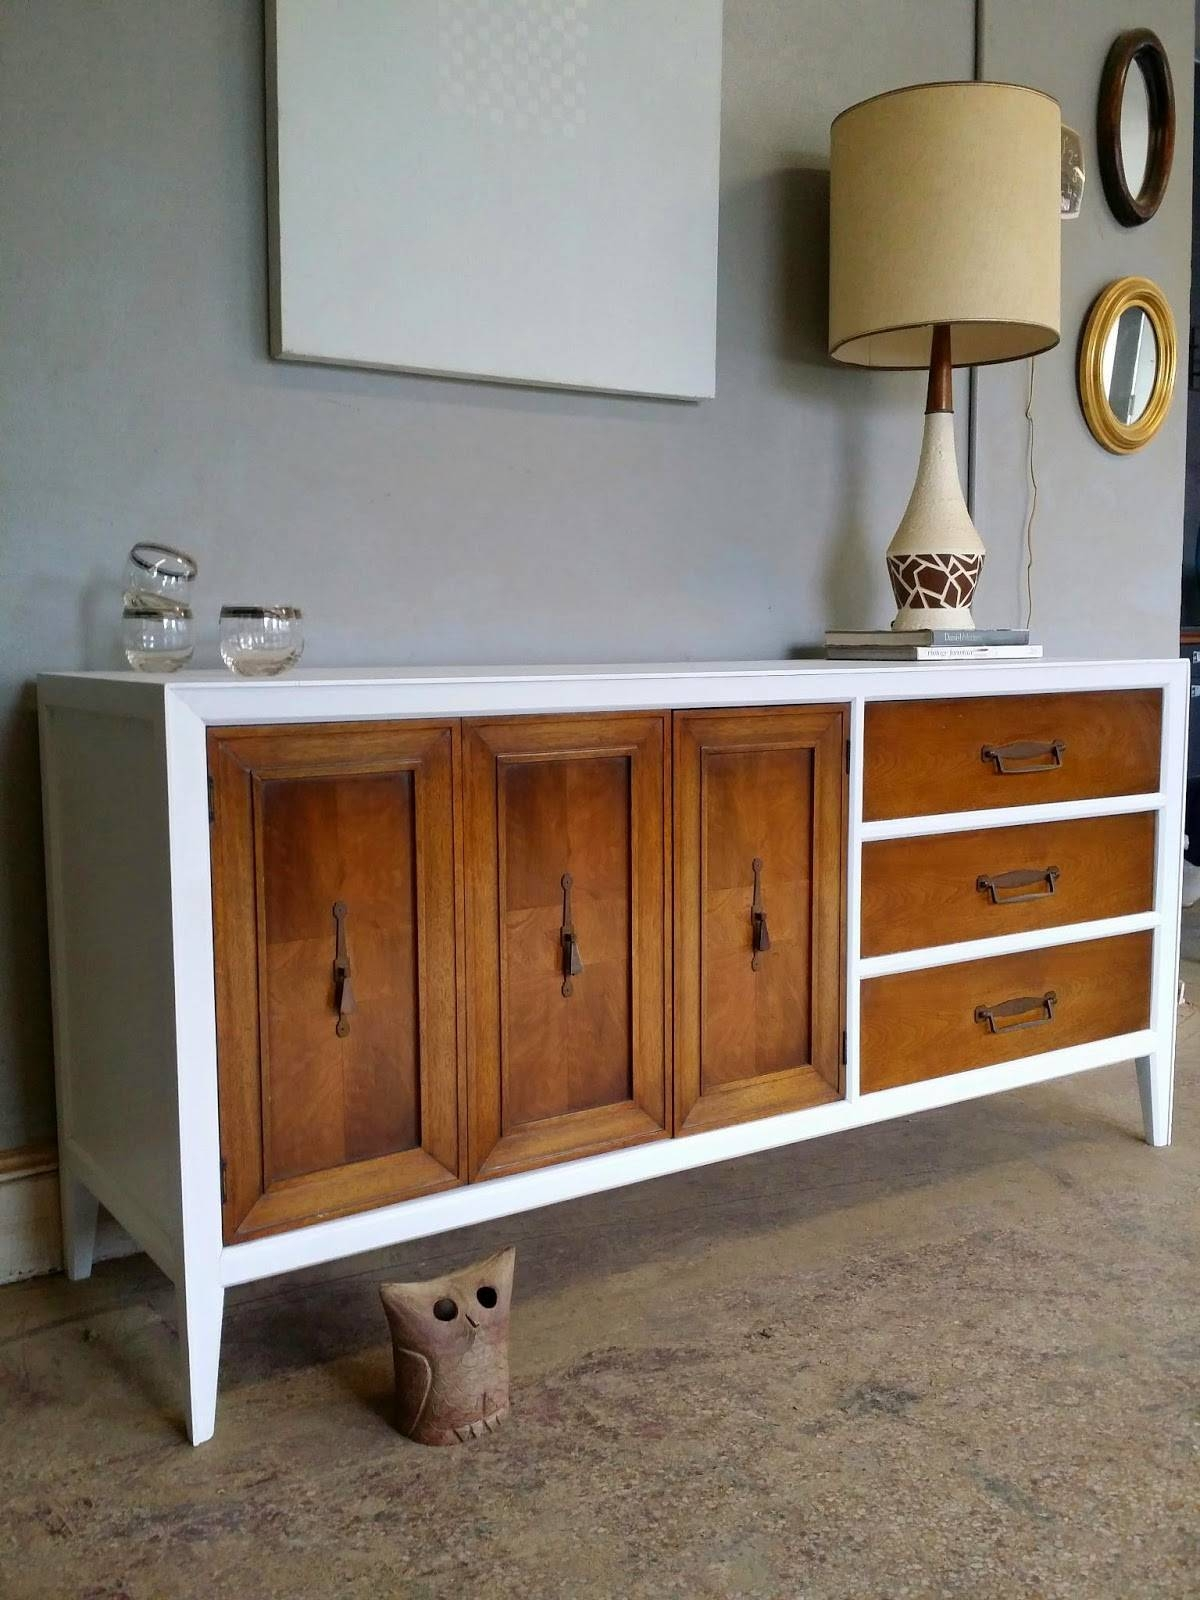 Vintage Ground: Mid Century White / Wood Credenza Media Console Buffet with regard to White Wood Sideboards (Image 27 of 30)